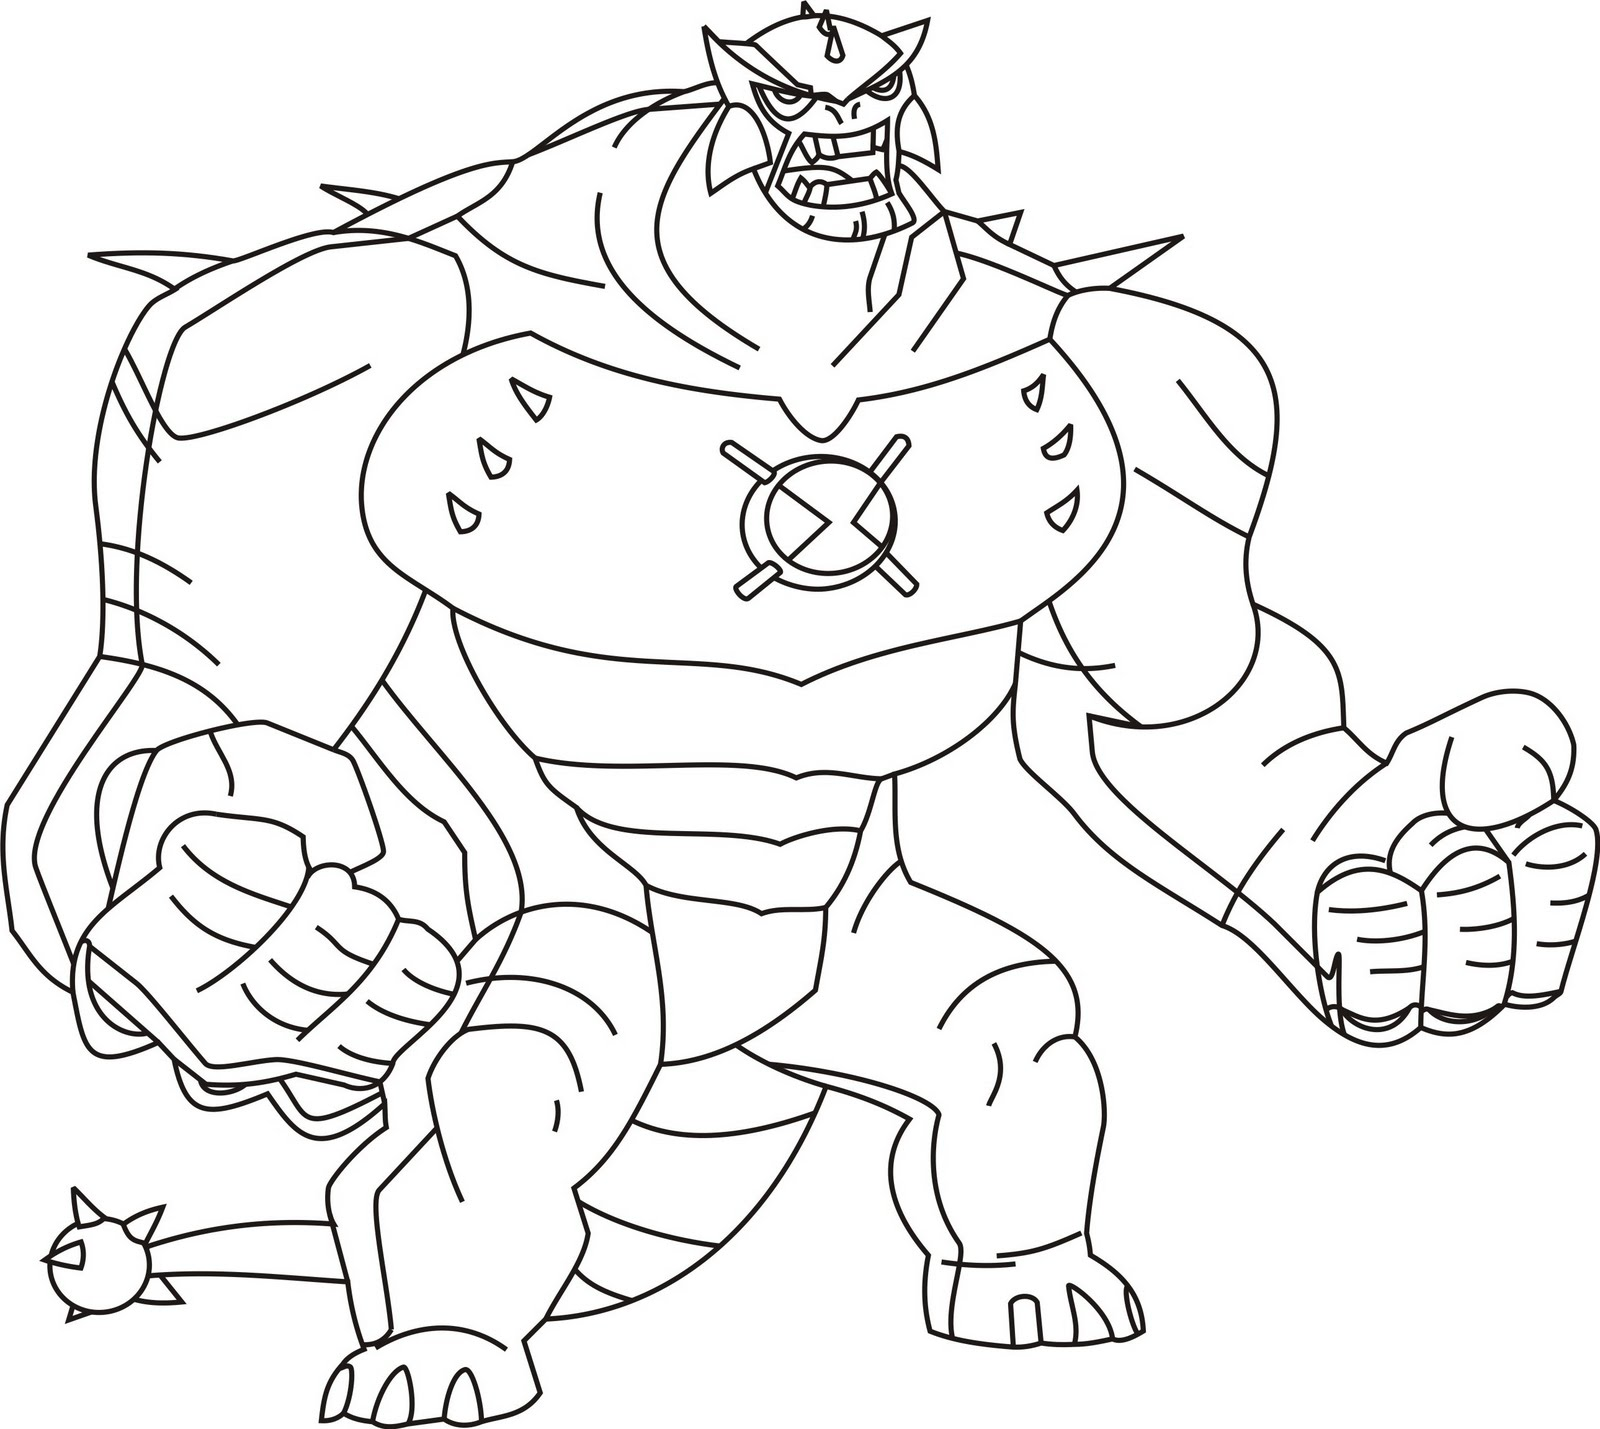 coloring pages ben 10 - photo#10